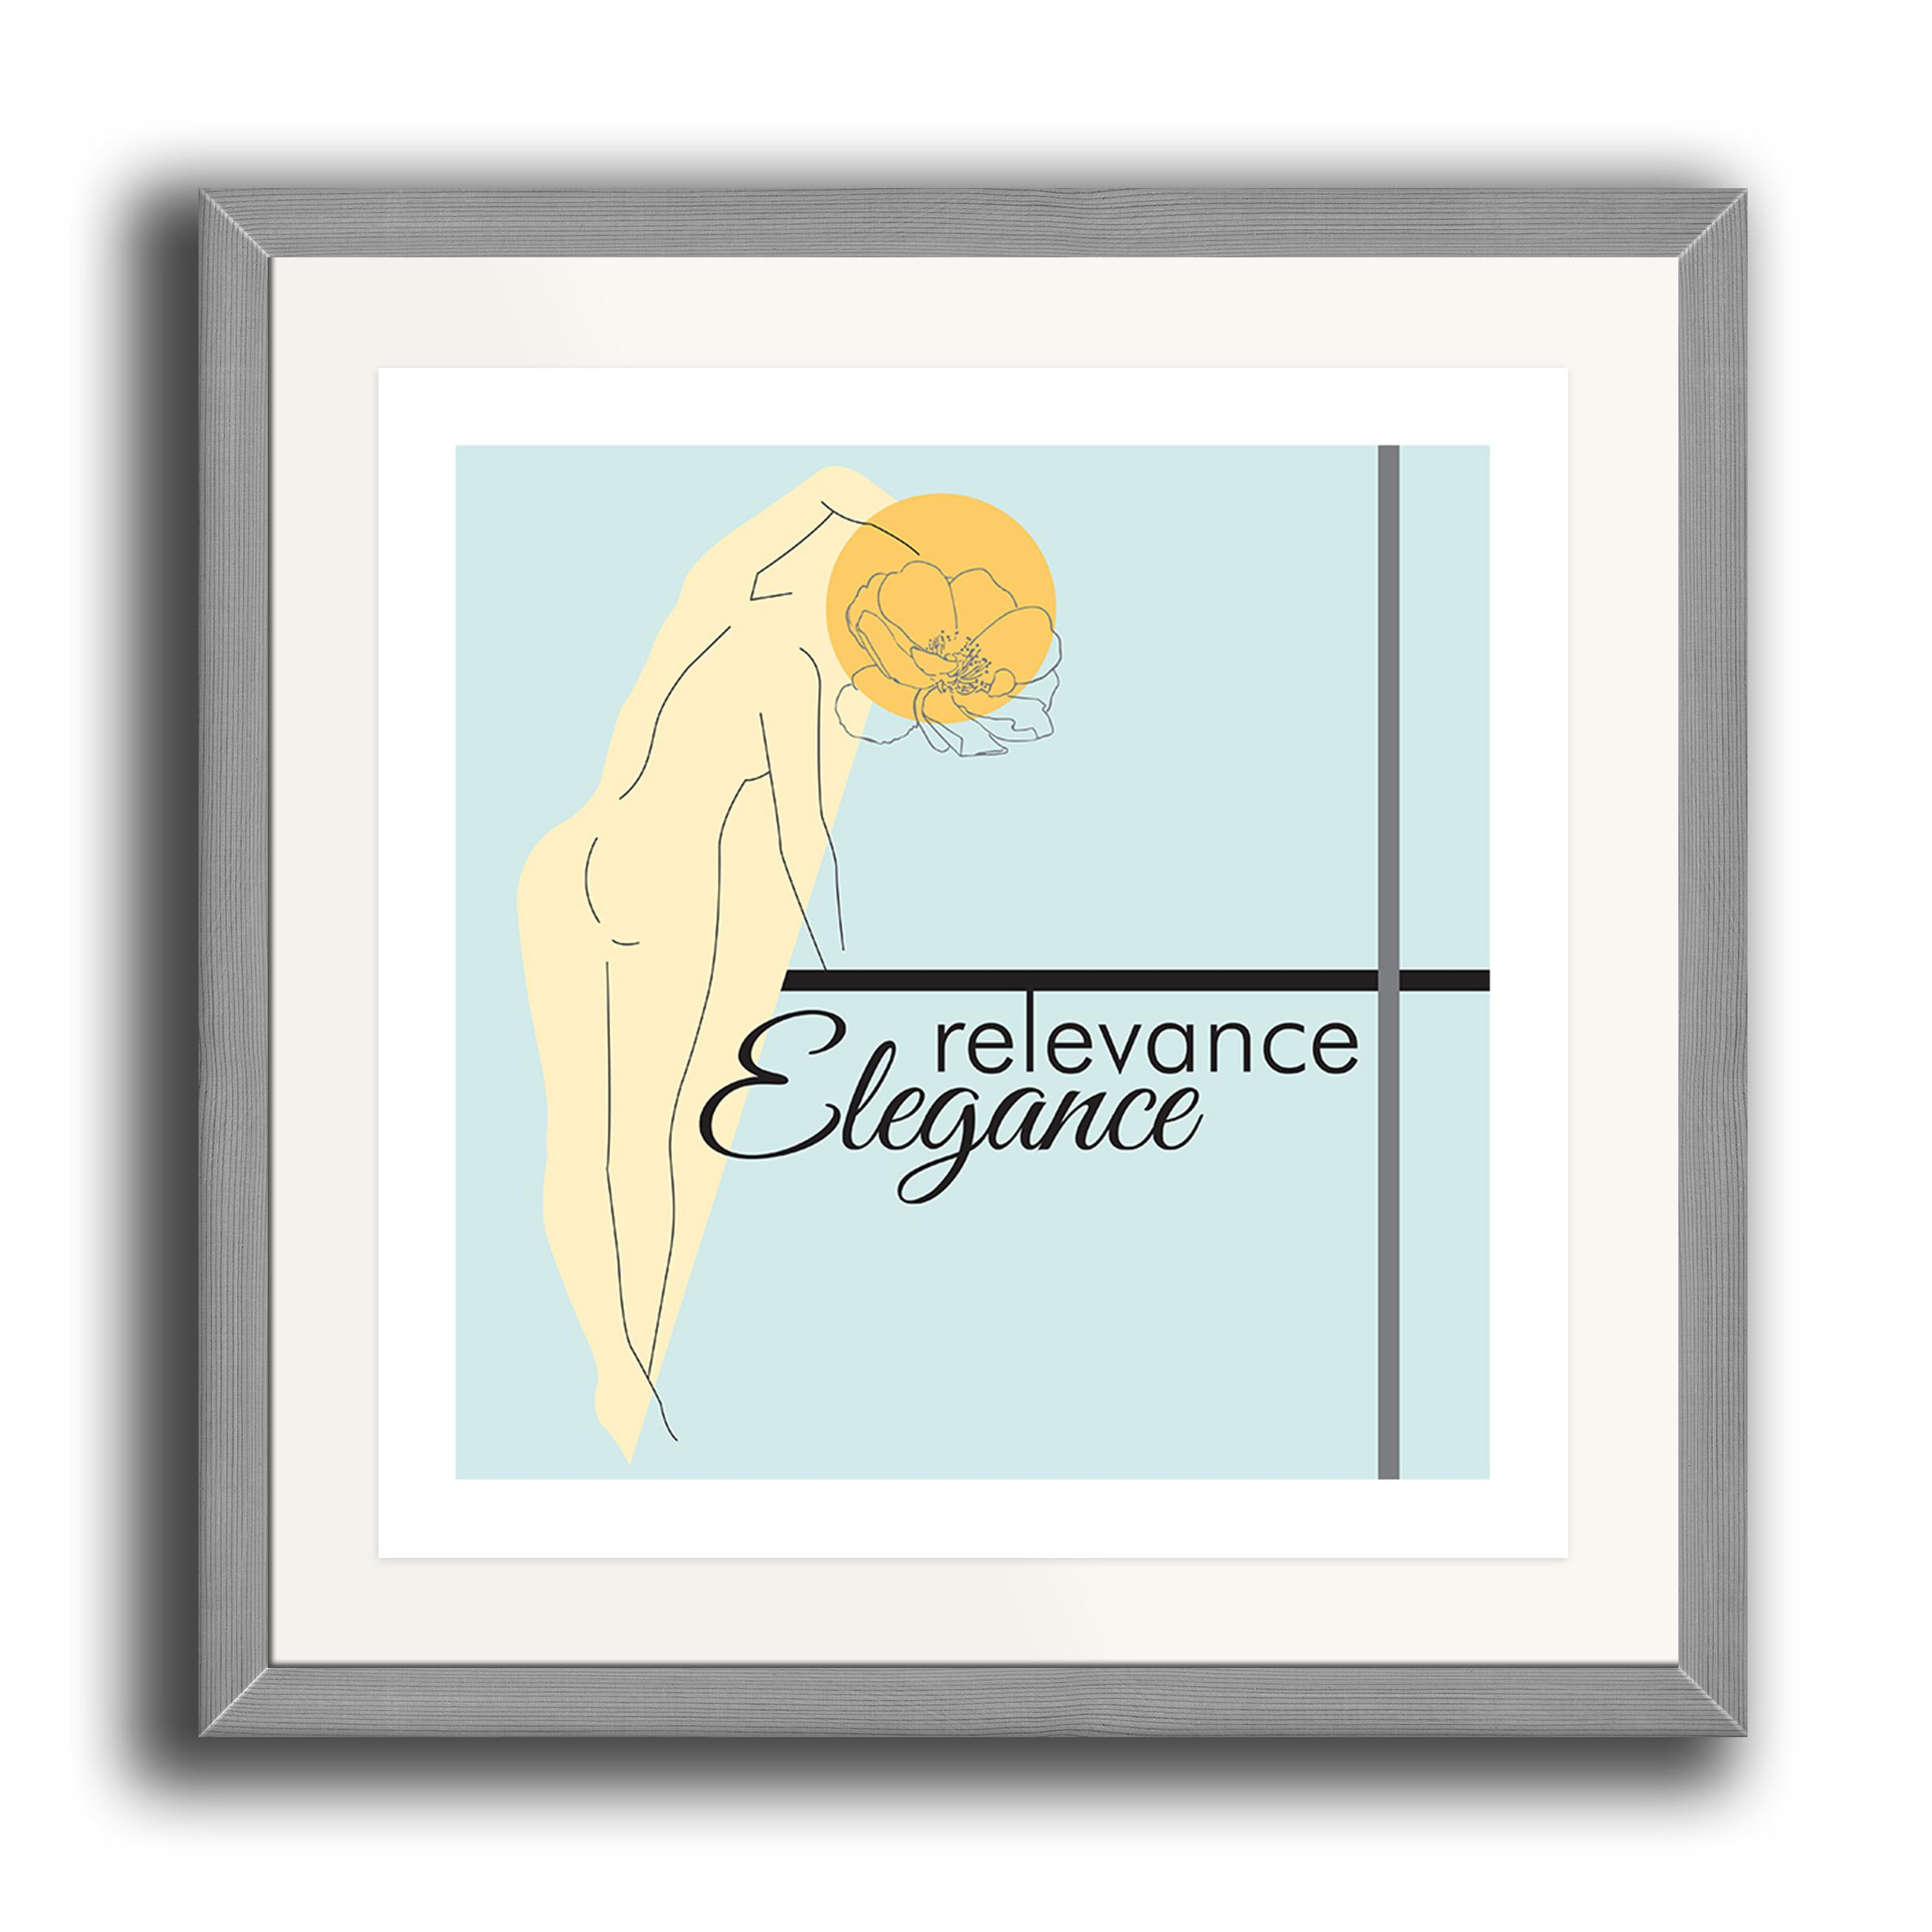 A watercolour print by Clarrie-Anne on eco fine art paper titled Relevance Elegance showing outline of a female with a line drawn flow head and typography with coloured shapes. The image is set in a grey coloured picture frame.